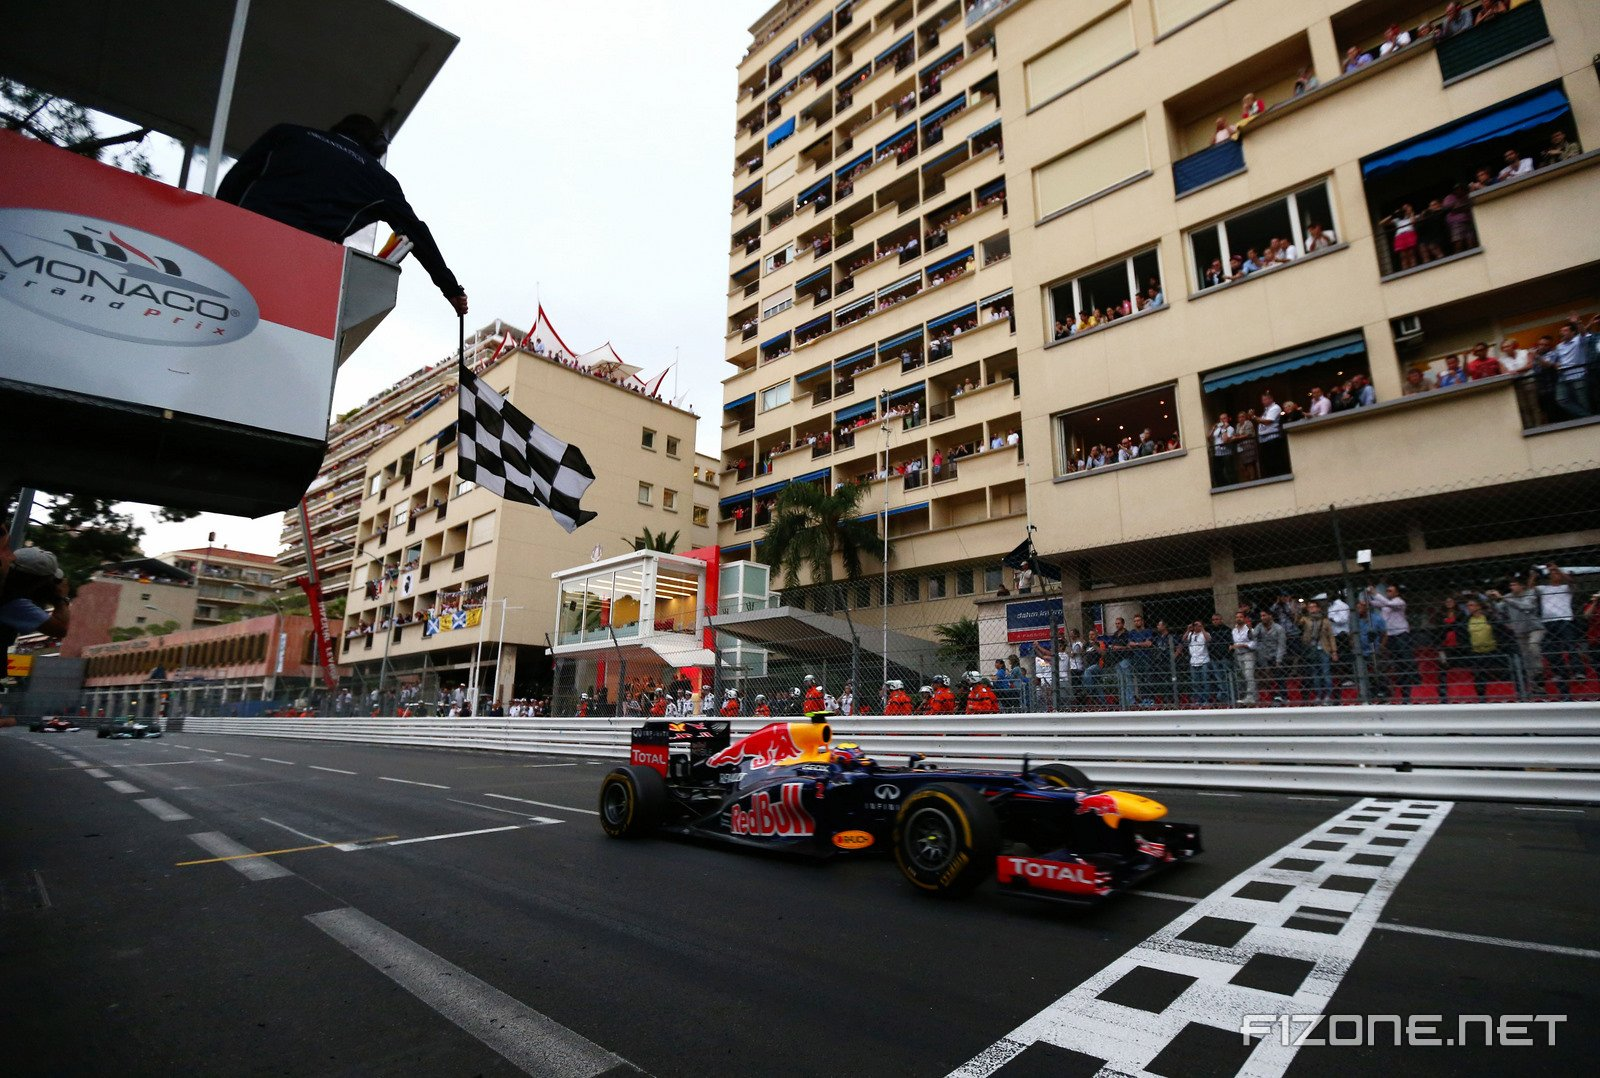 Review: Official Formula 1 Season Review 2012